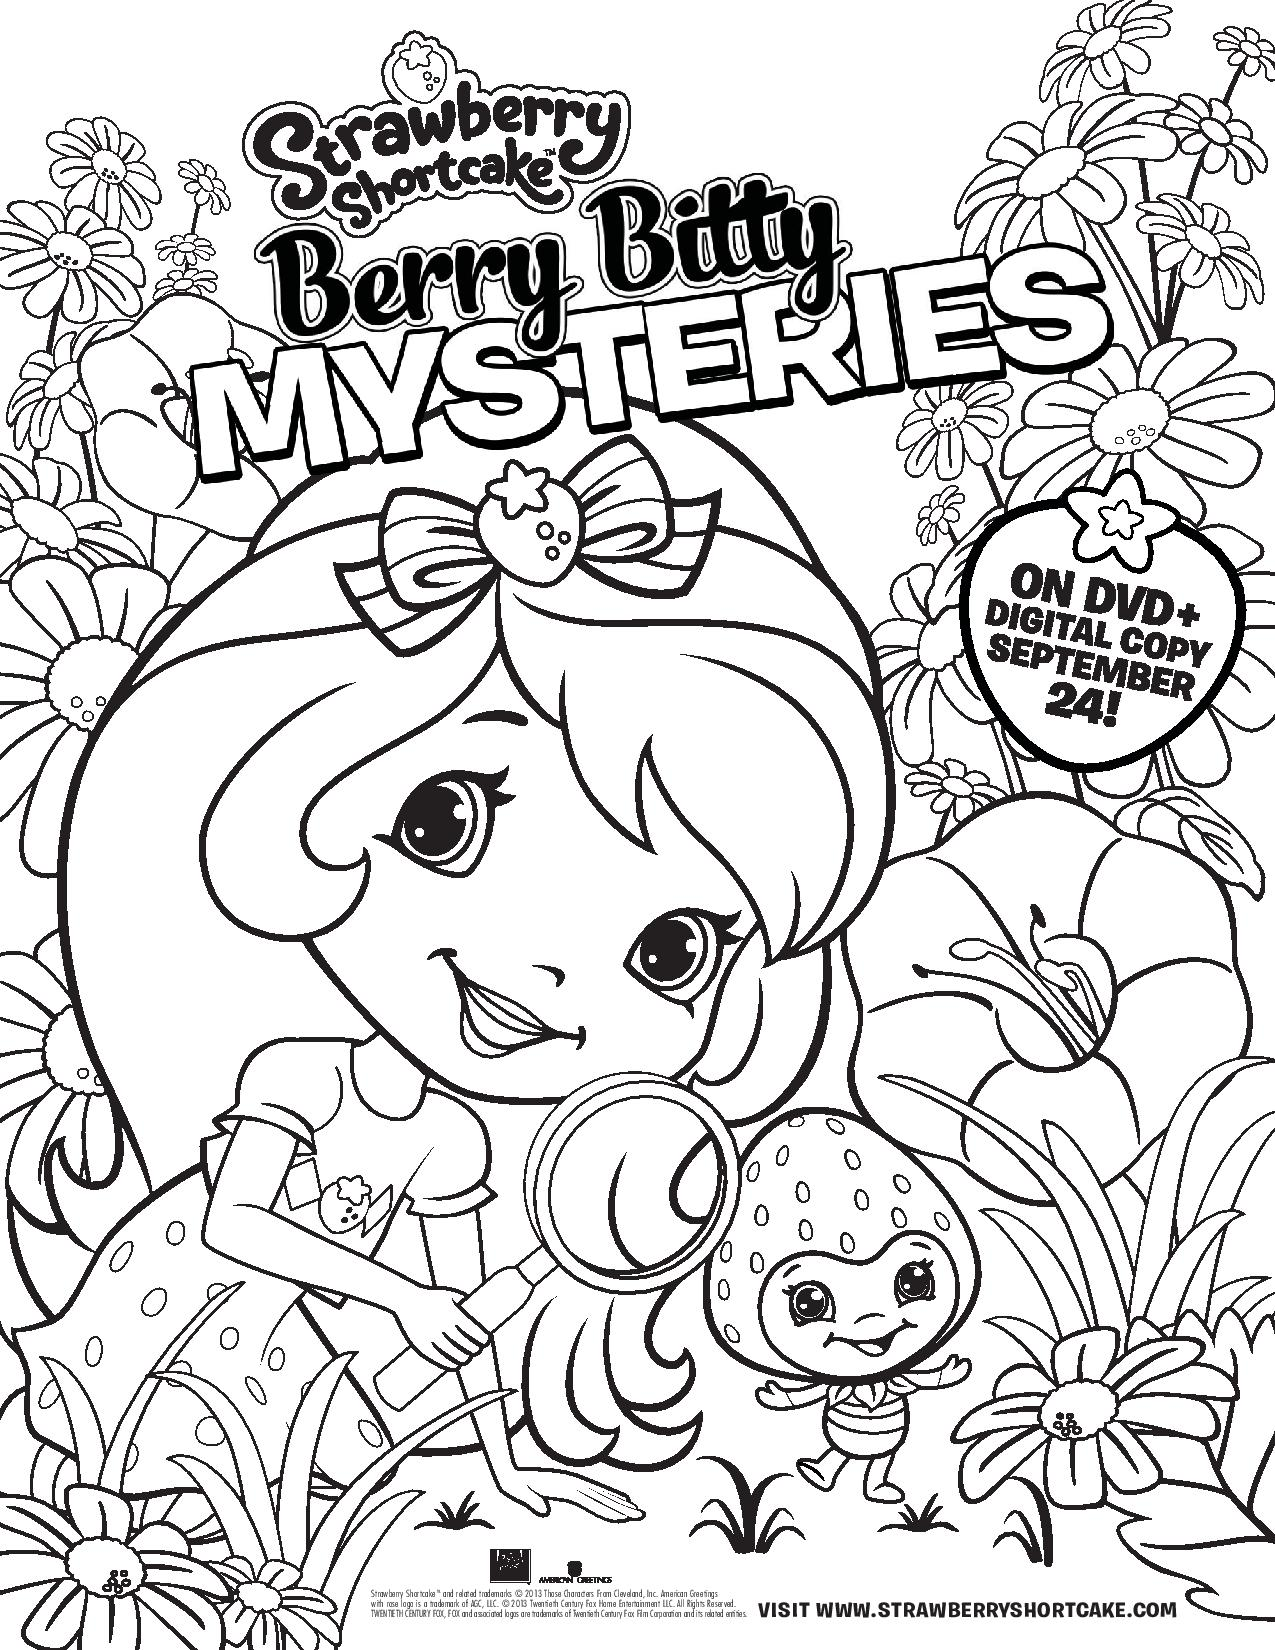 20+ Free Printable Strawberry Shortcake Coloring Pages ... | 1650x1275